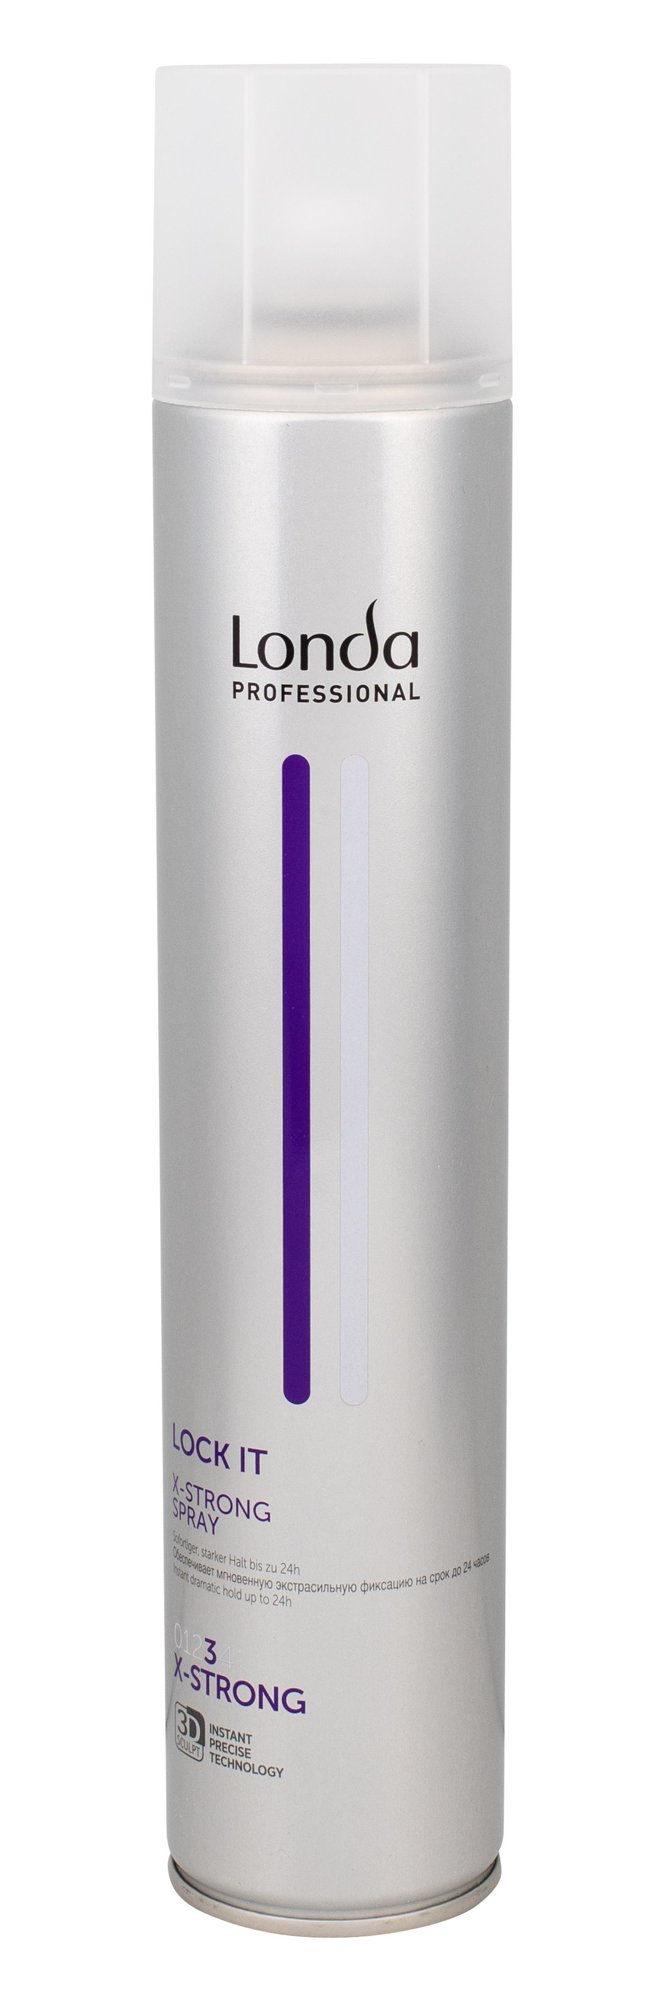 Londa Professional Finish Cosmetic 500ml  Lock It